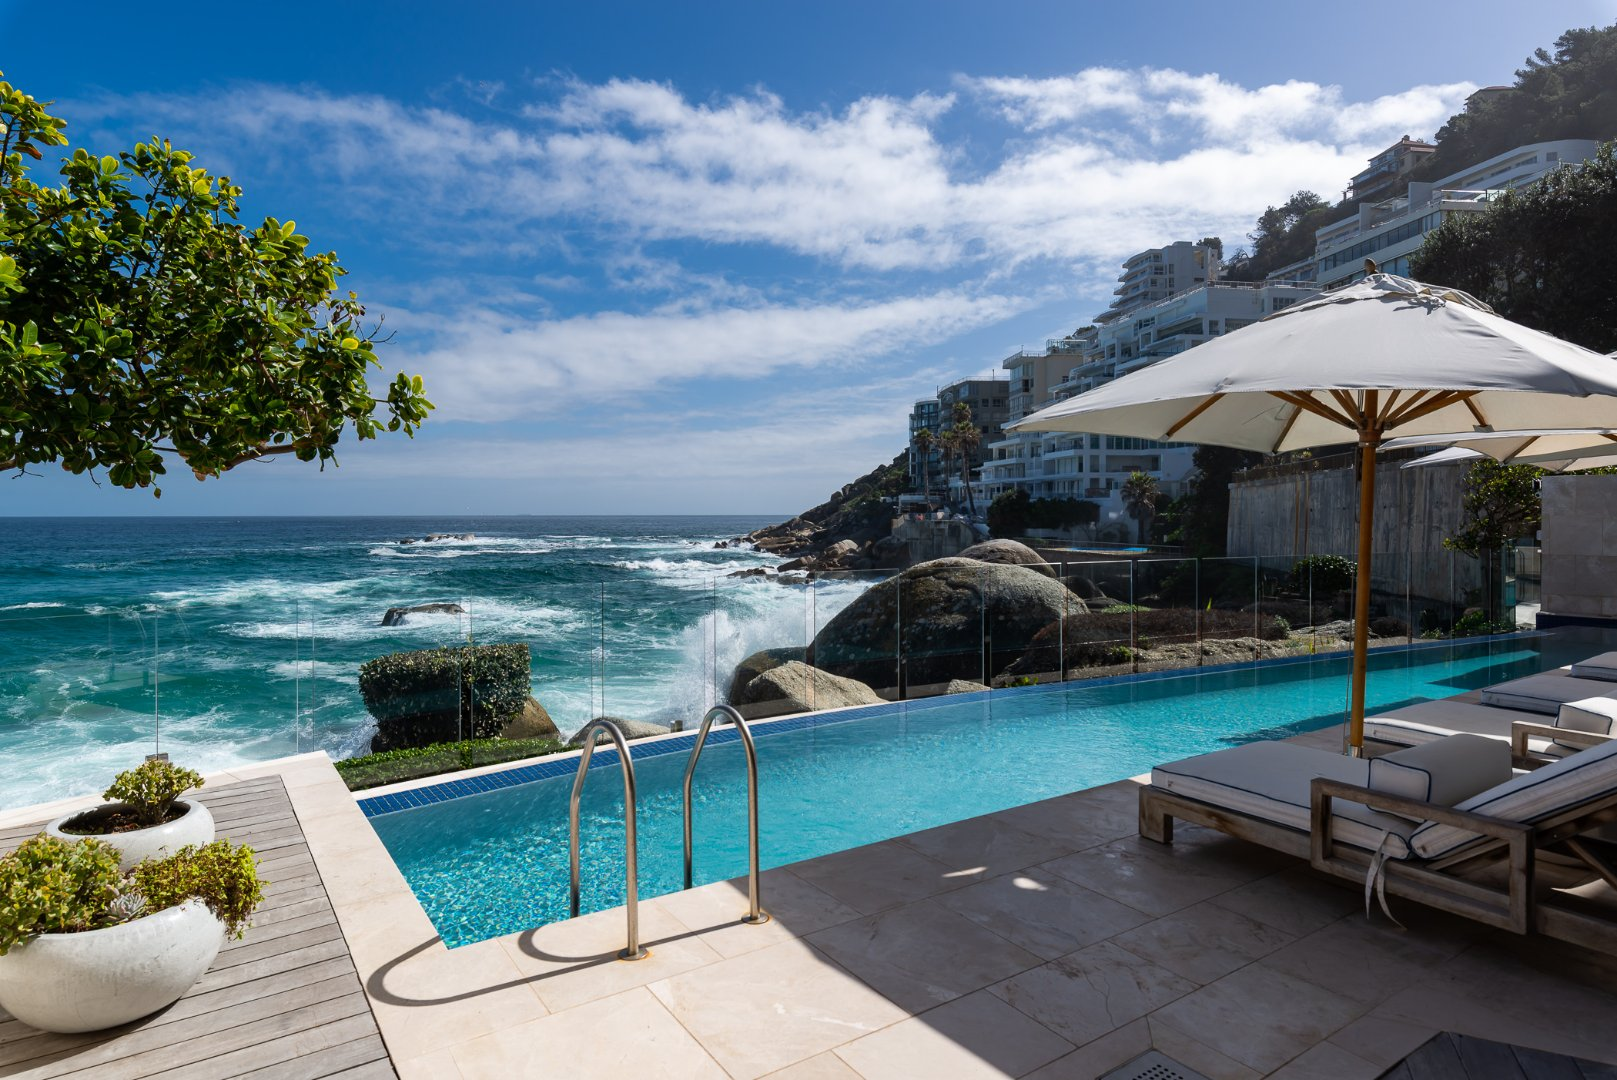 4 Bedroom Penthouse Apartment for Sale in Clifton